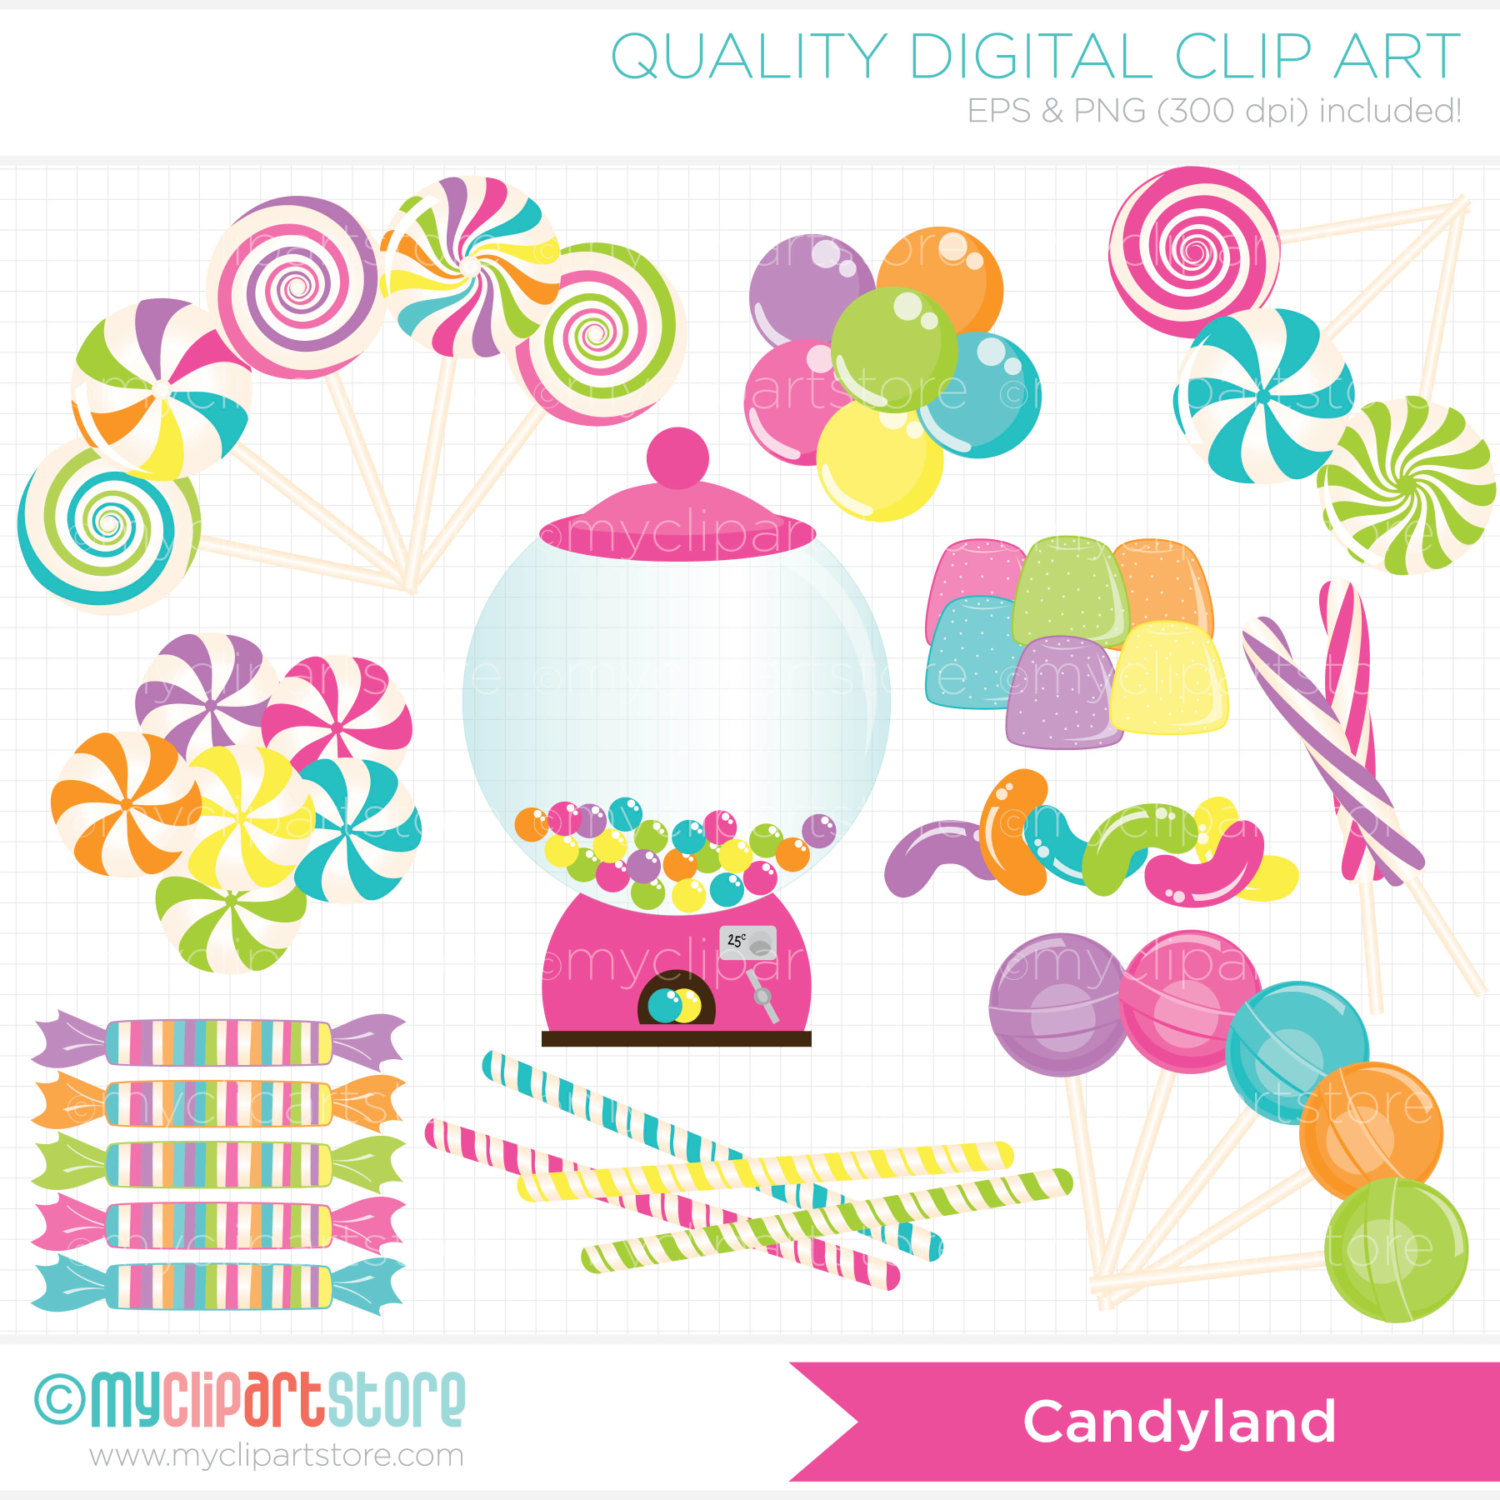 Christmas Candyland Clipart.Candyland Clipart Look At Clip Art Images Clipartlook